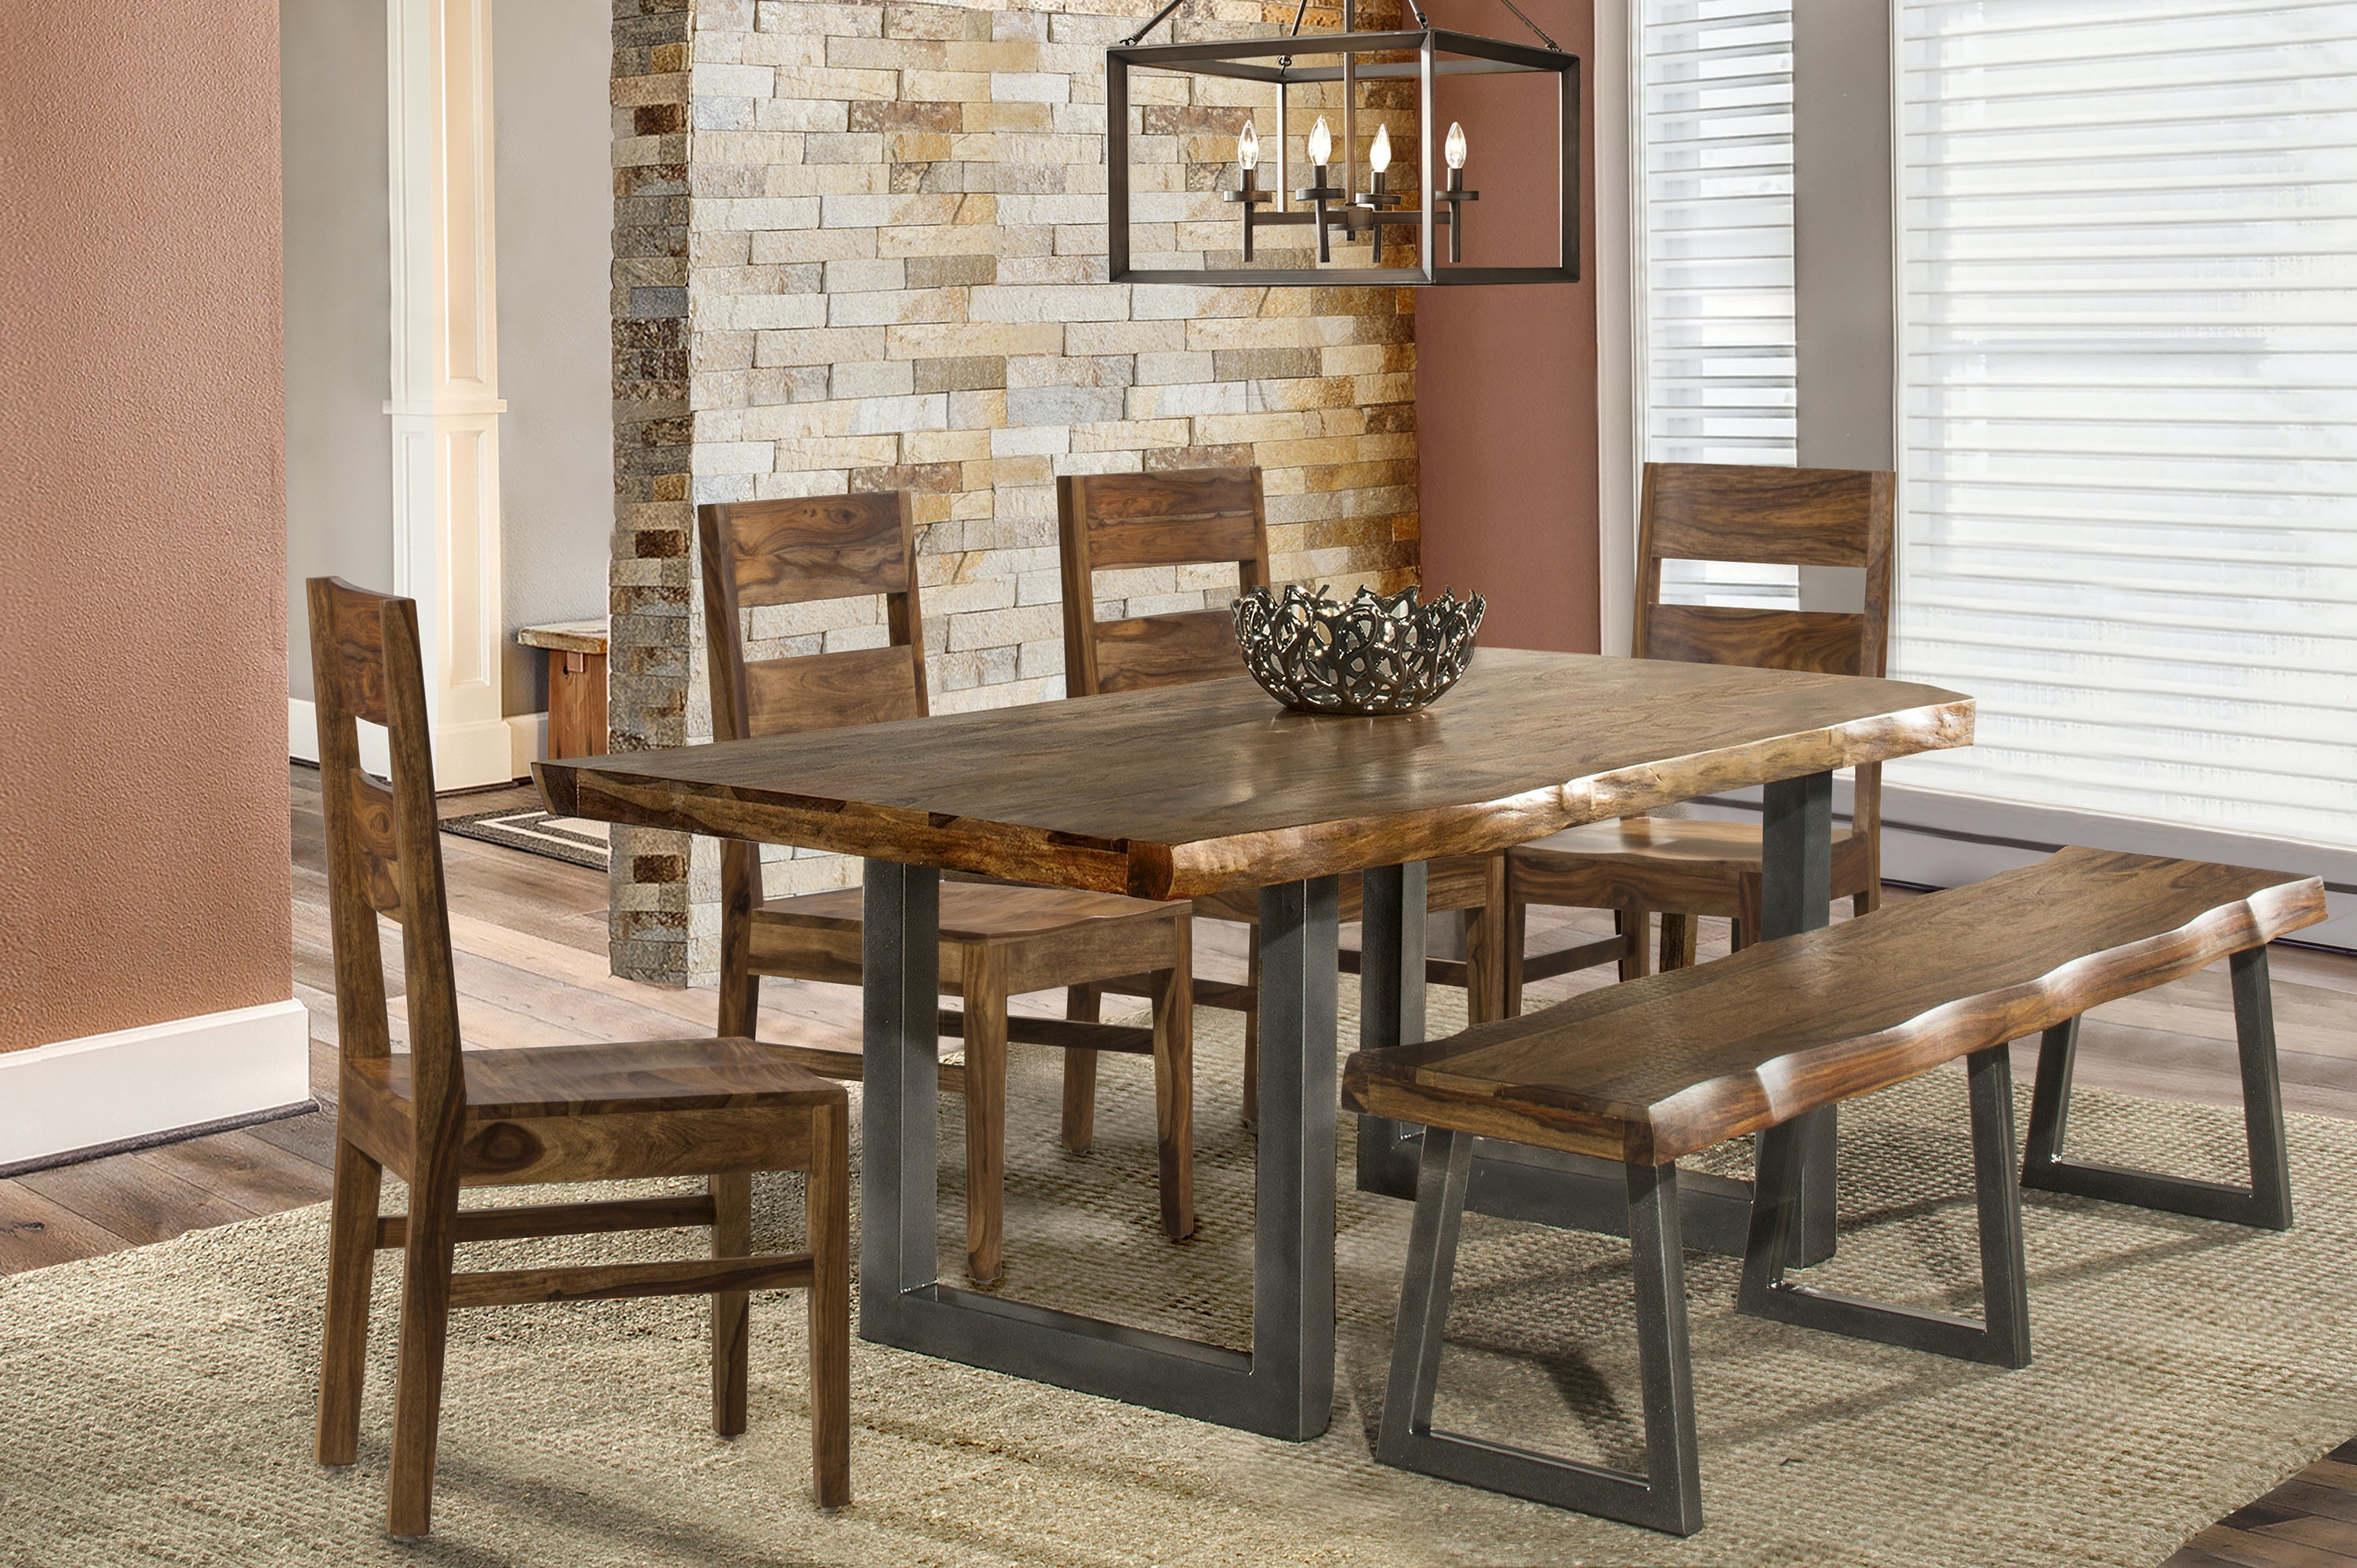 Gentil Hillsdale Furniture Emerson 6 Piece Rectangle Dining Set With One (1) Bench  And